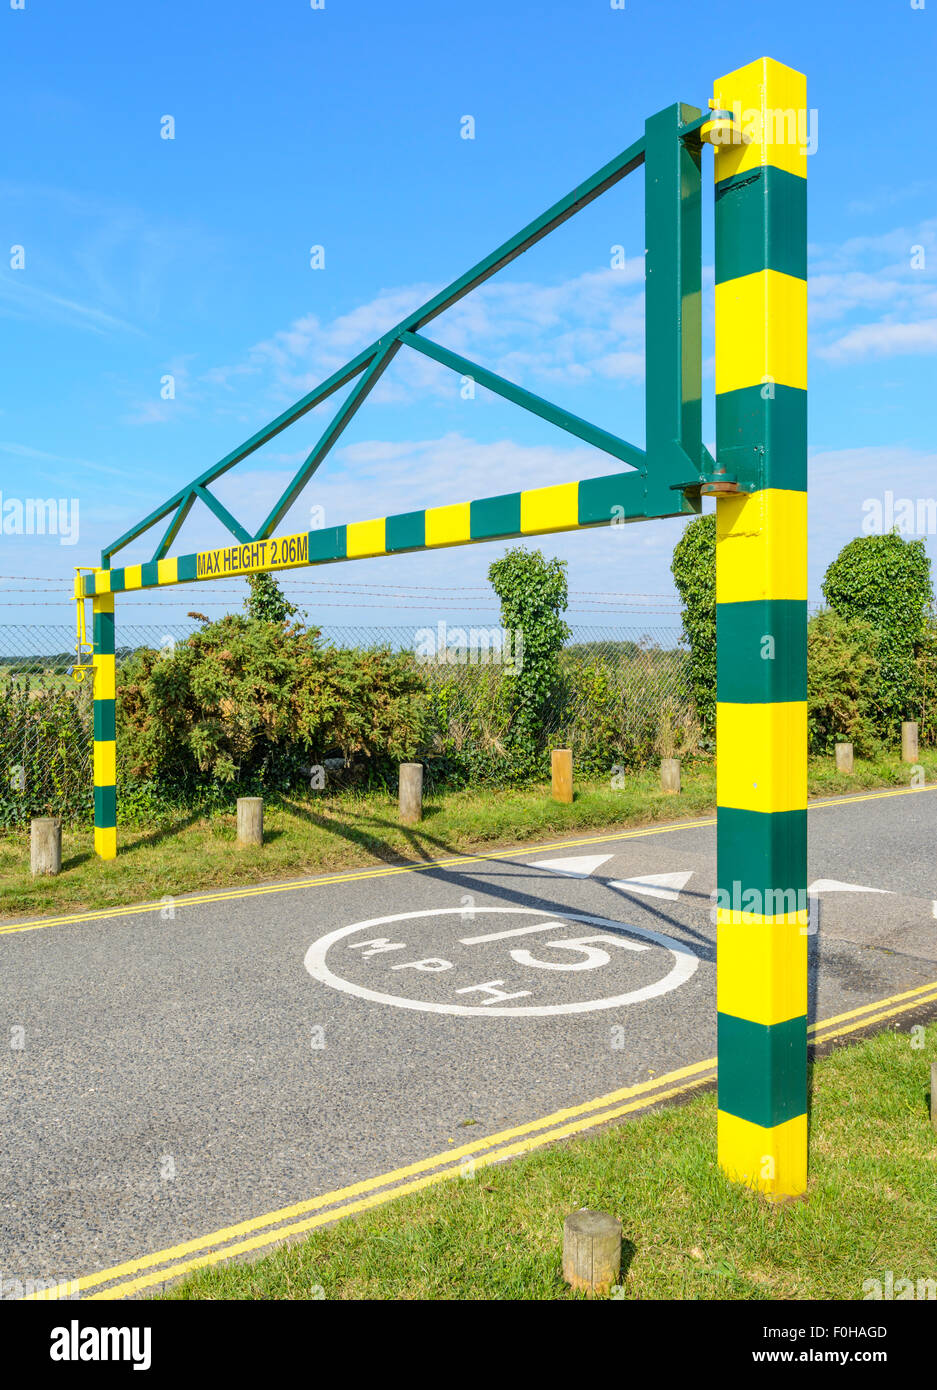 2.06m Maximum height barrier at the entrance to the West Beach car park in Littlehampton, West Sussex, England, - Stock Image